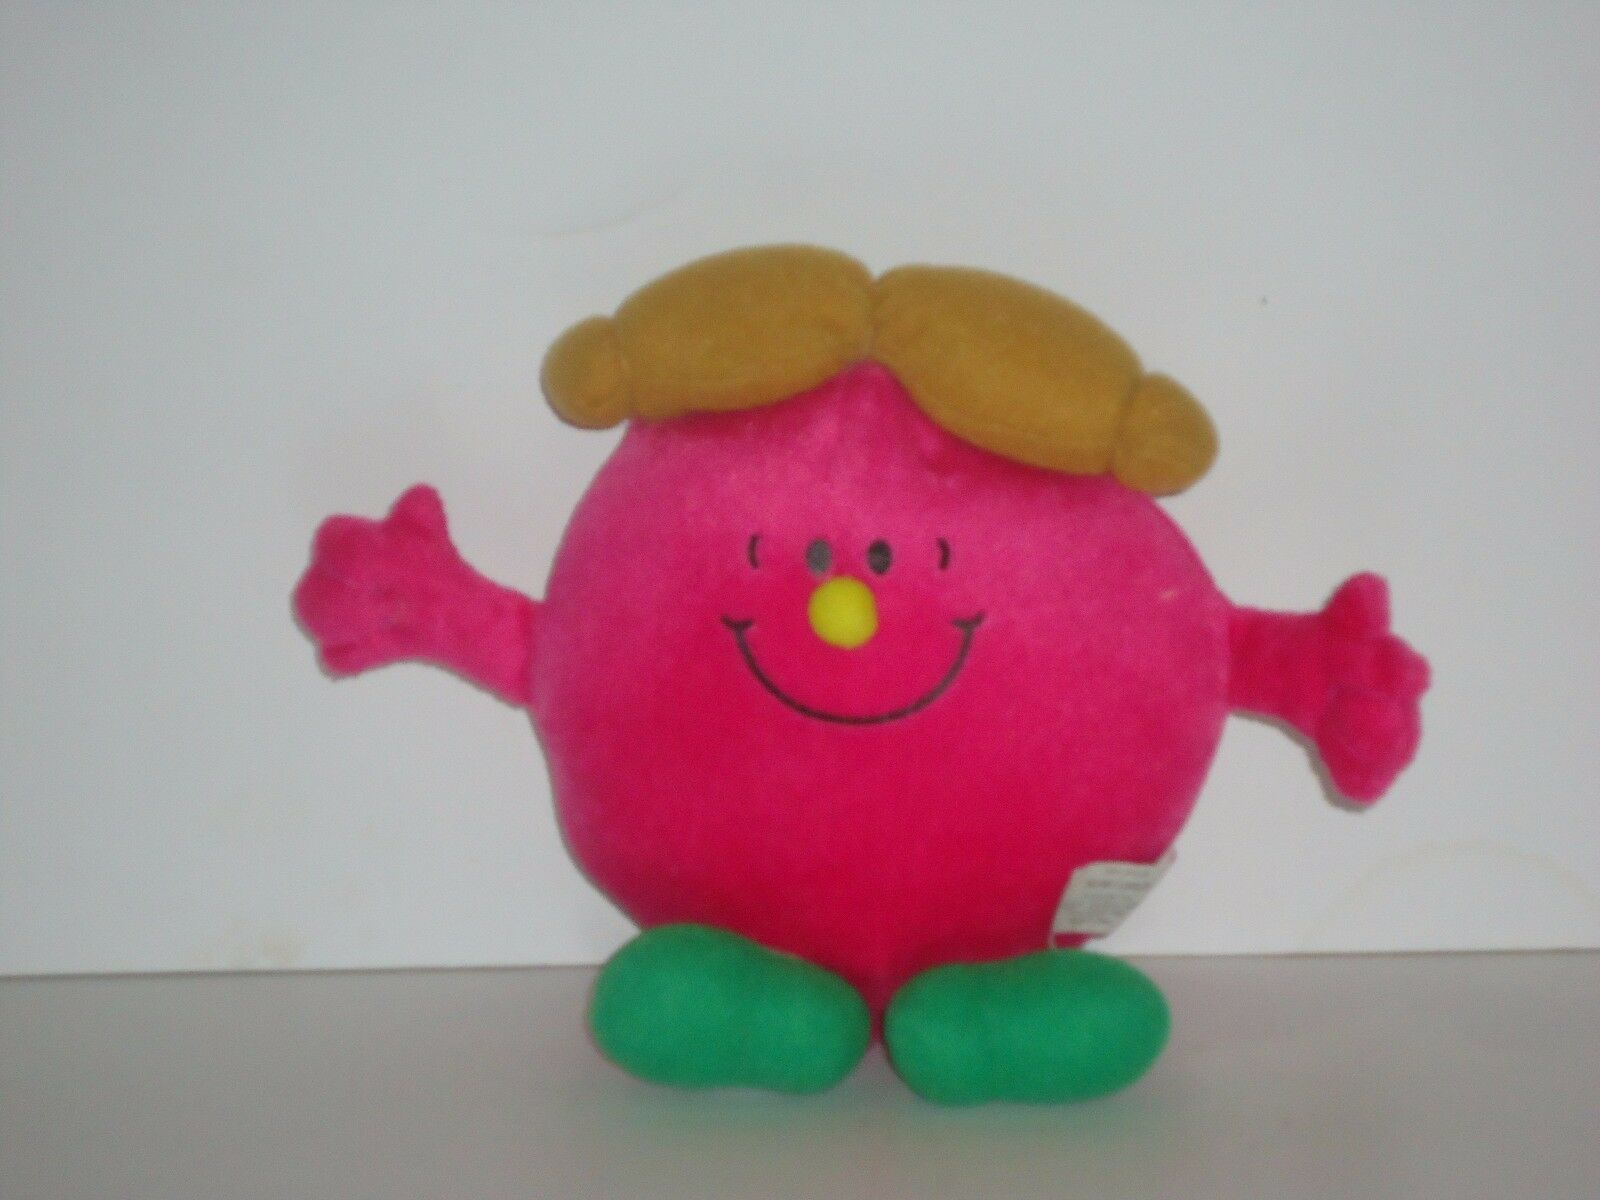 ST14155 Collectable Little Plush Miss Chatterbox Plush Little Toy 2007 1b45f4